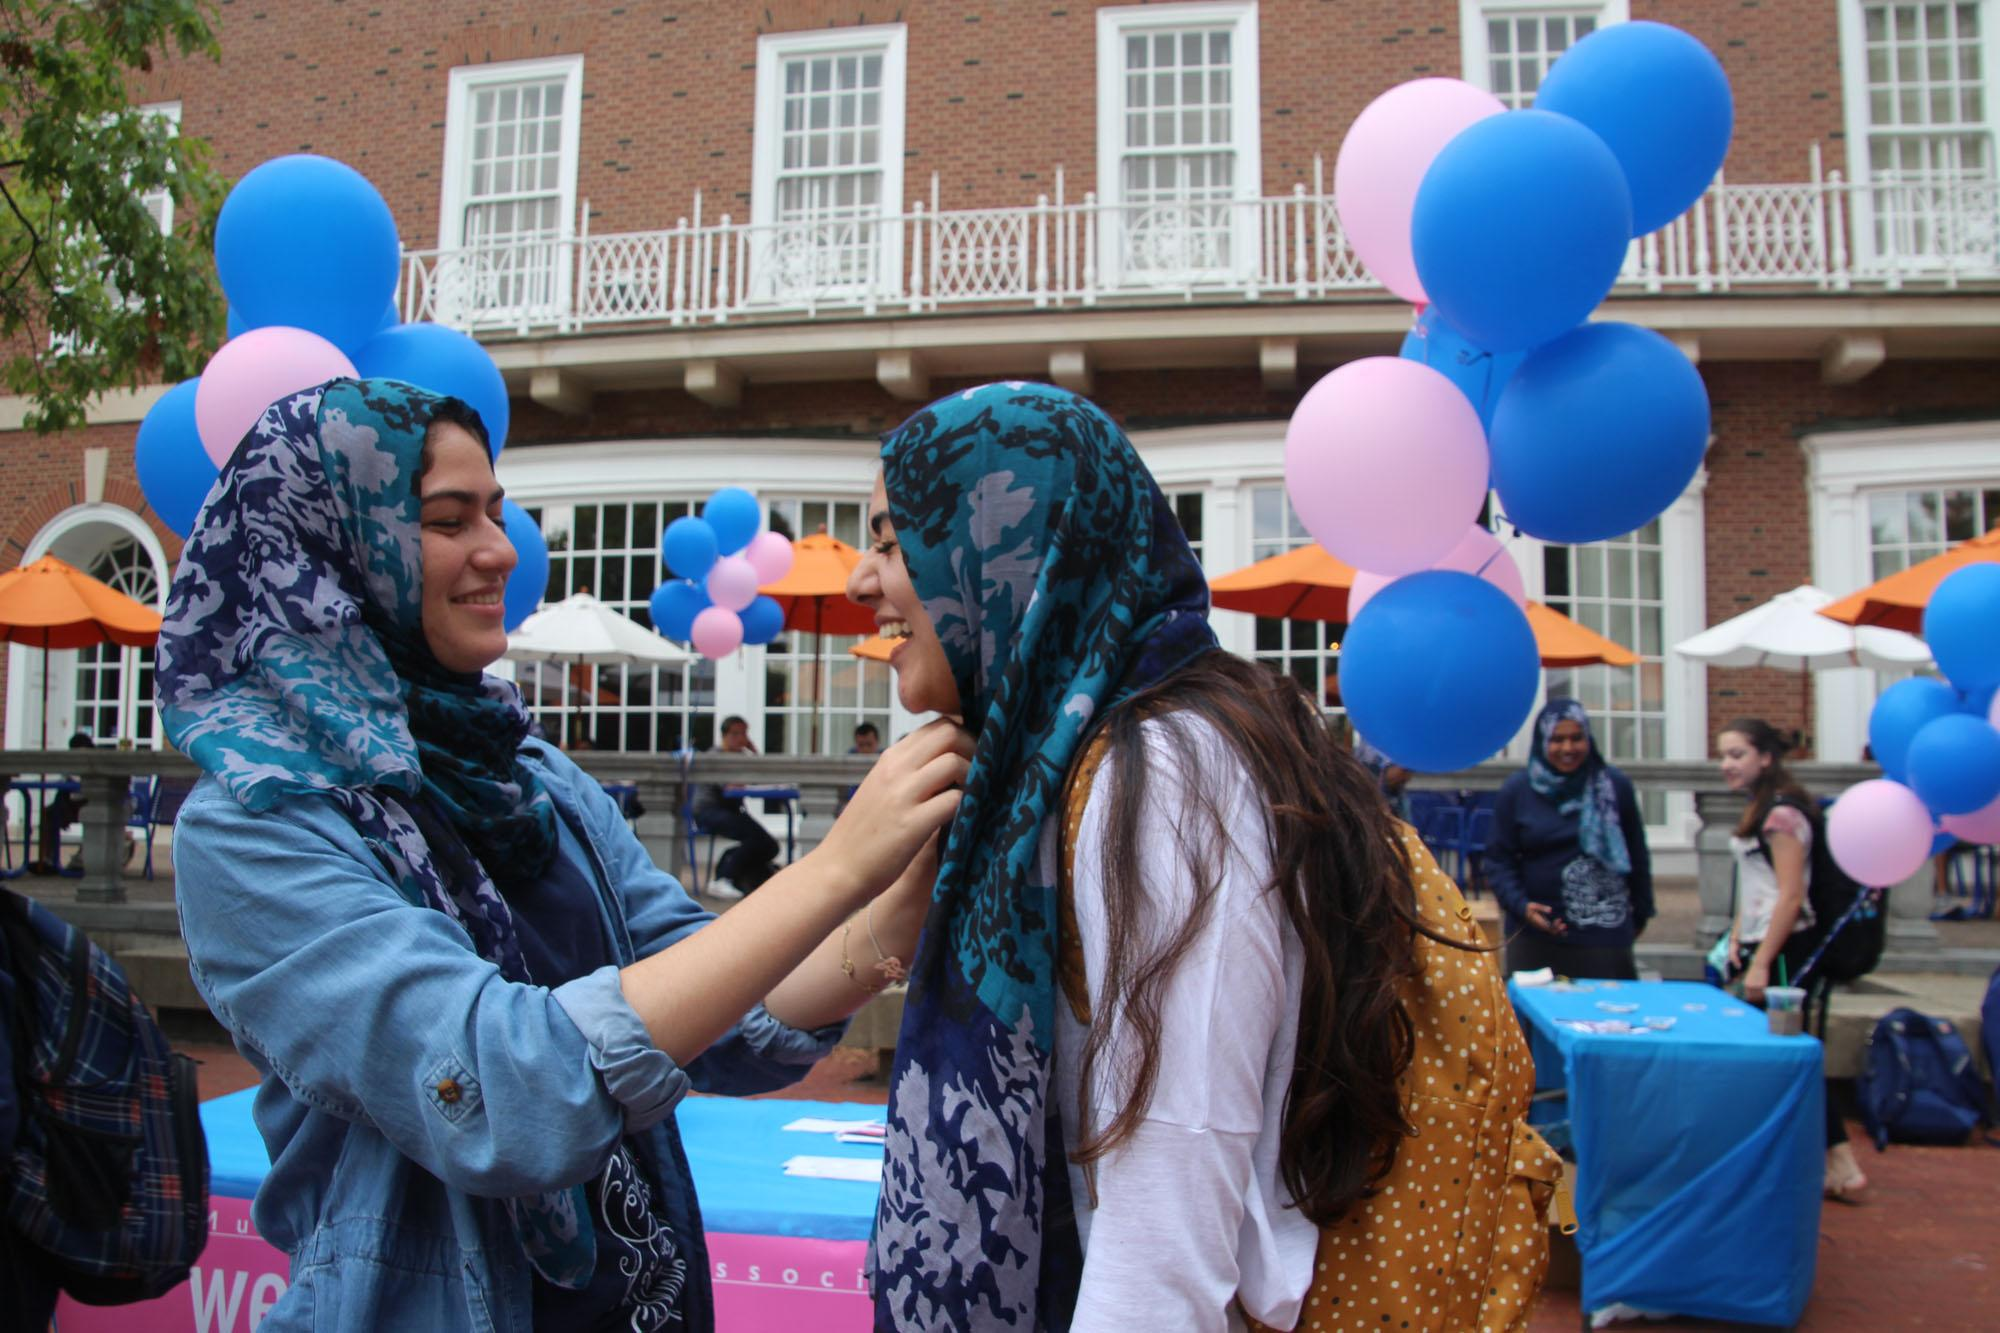 Reema Ghabra, sophomore in LAS, puts a hijab on Aisha Motan, a freshman in Education, as part of the Wear a Hijab Challenge, an event during Islam Awareness Week on Monday.